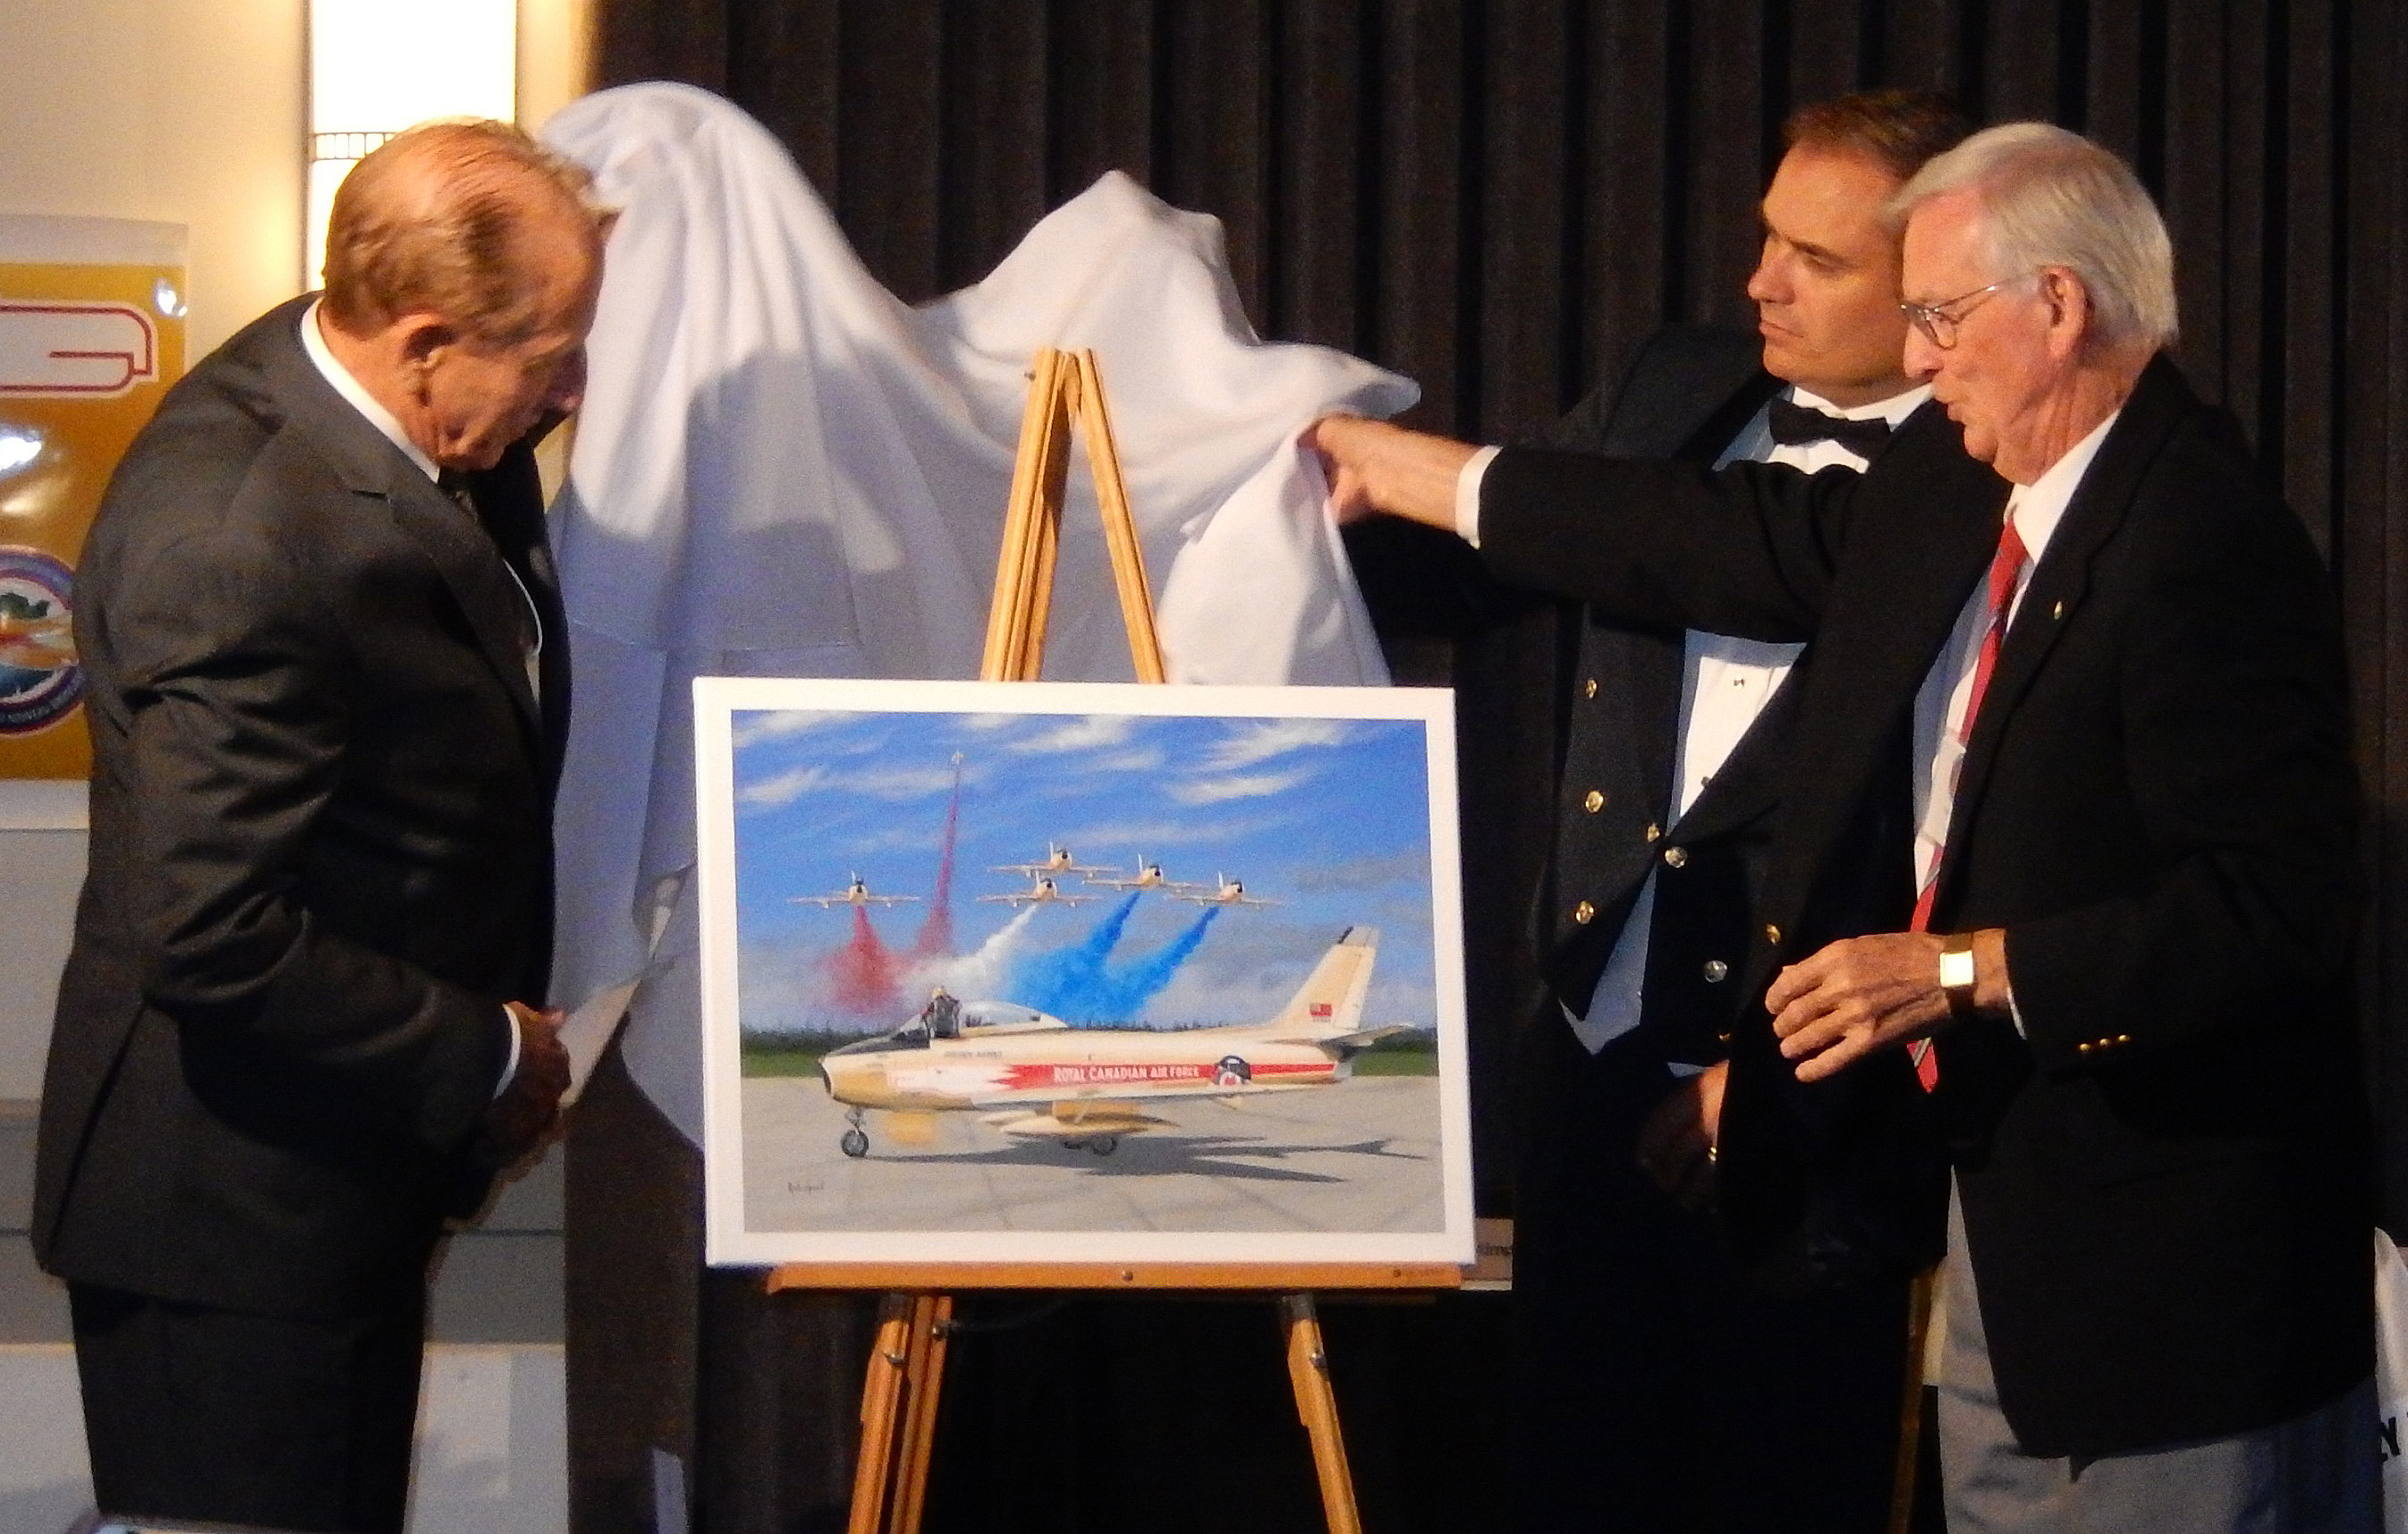 Three men surround an easel on which rests a painting of a golden-coloured aircraft. They are holding the white cloth they have just lifted from the painting.